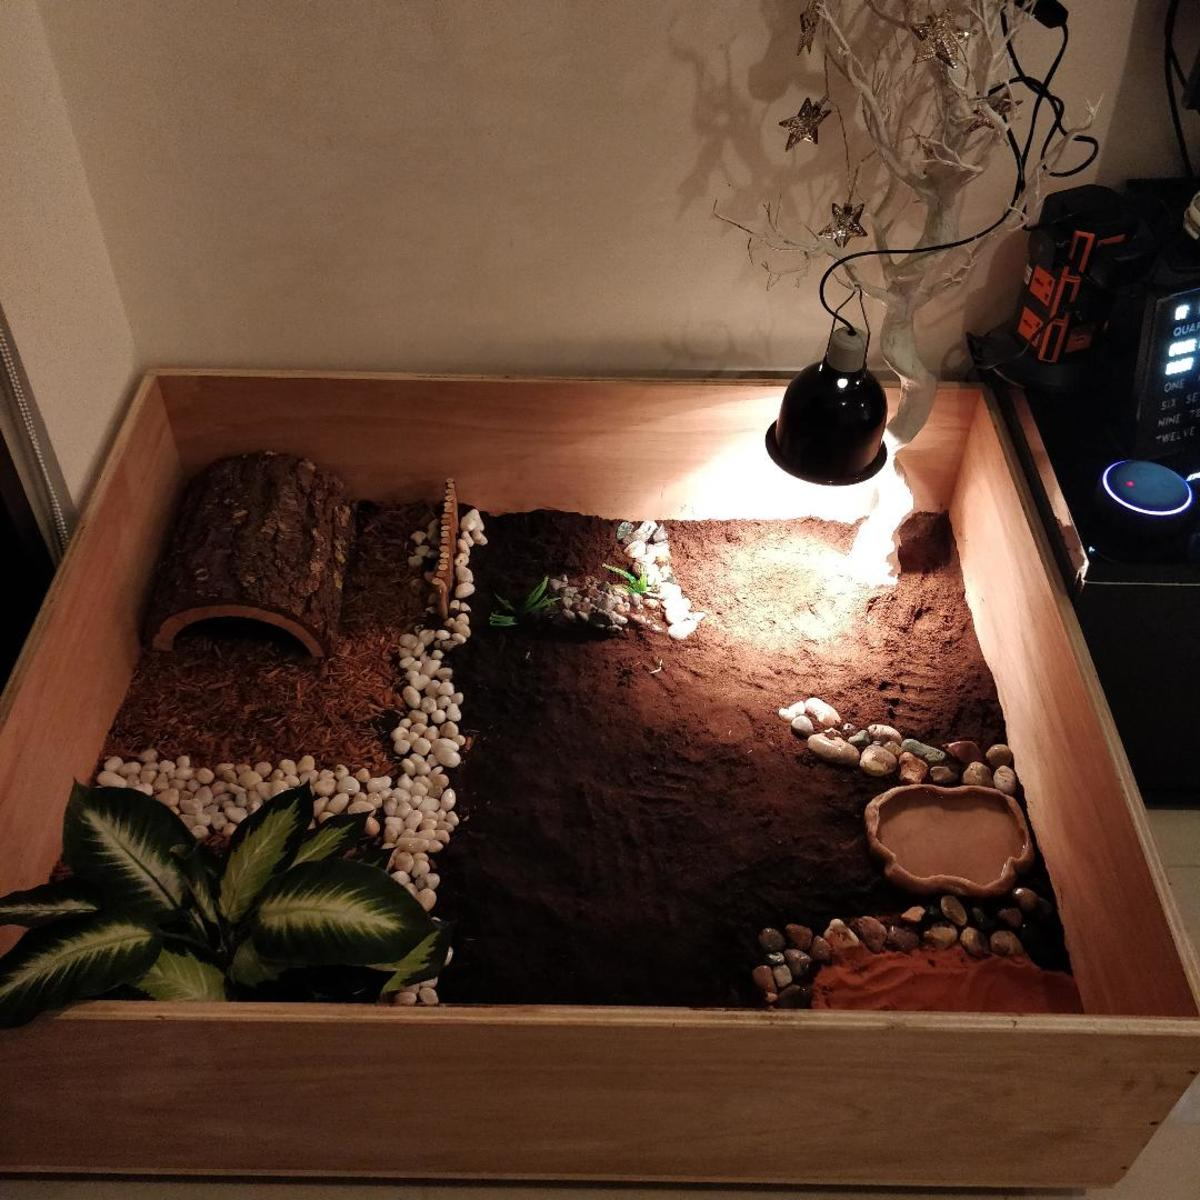 The enclosure for my Greek tortoise.